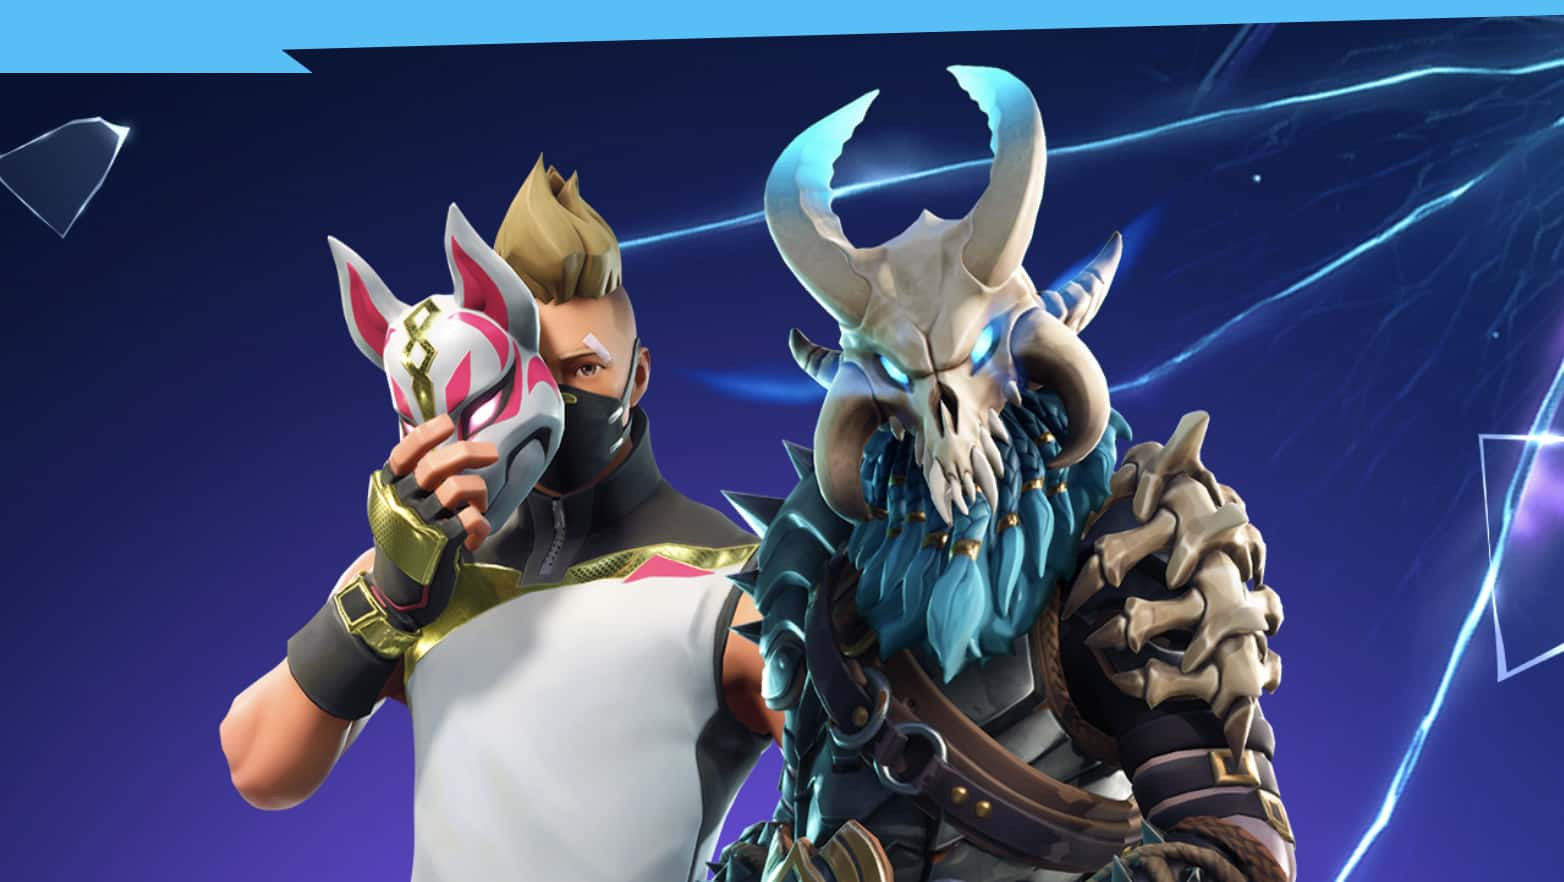 How To Get Live Wallpapers On Iphone 5 Fortnite Challenge Guide For Season 5 Week 1